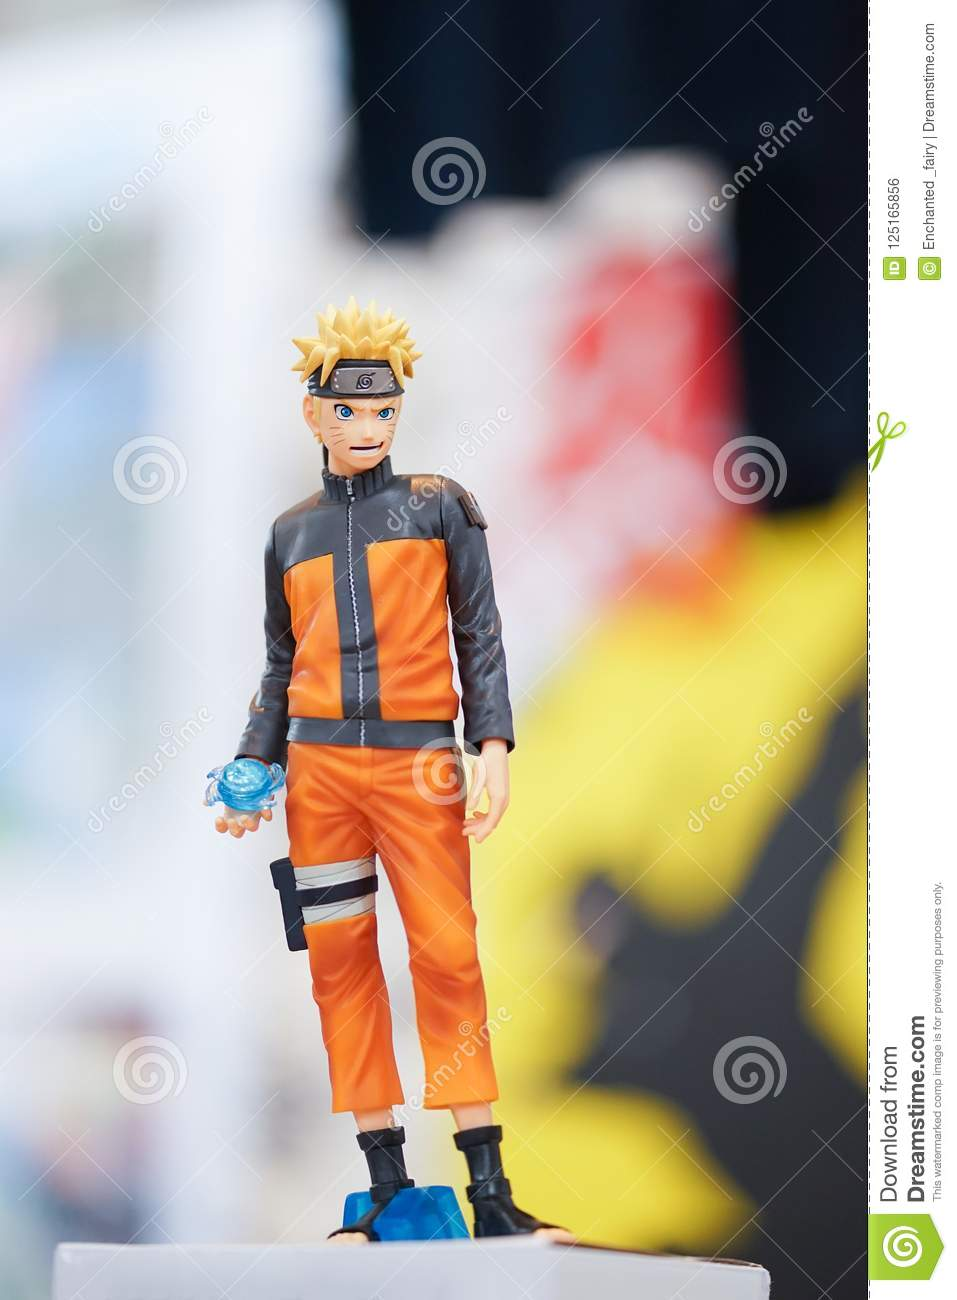 Naruto a main character from a japanese manga series naruto